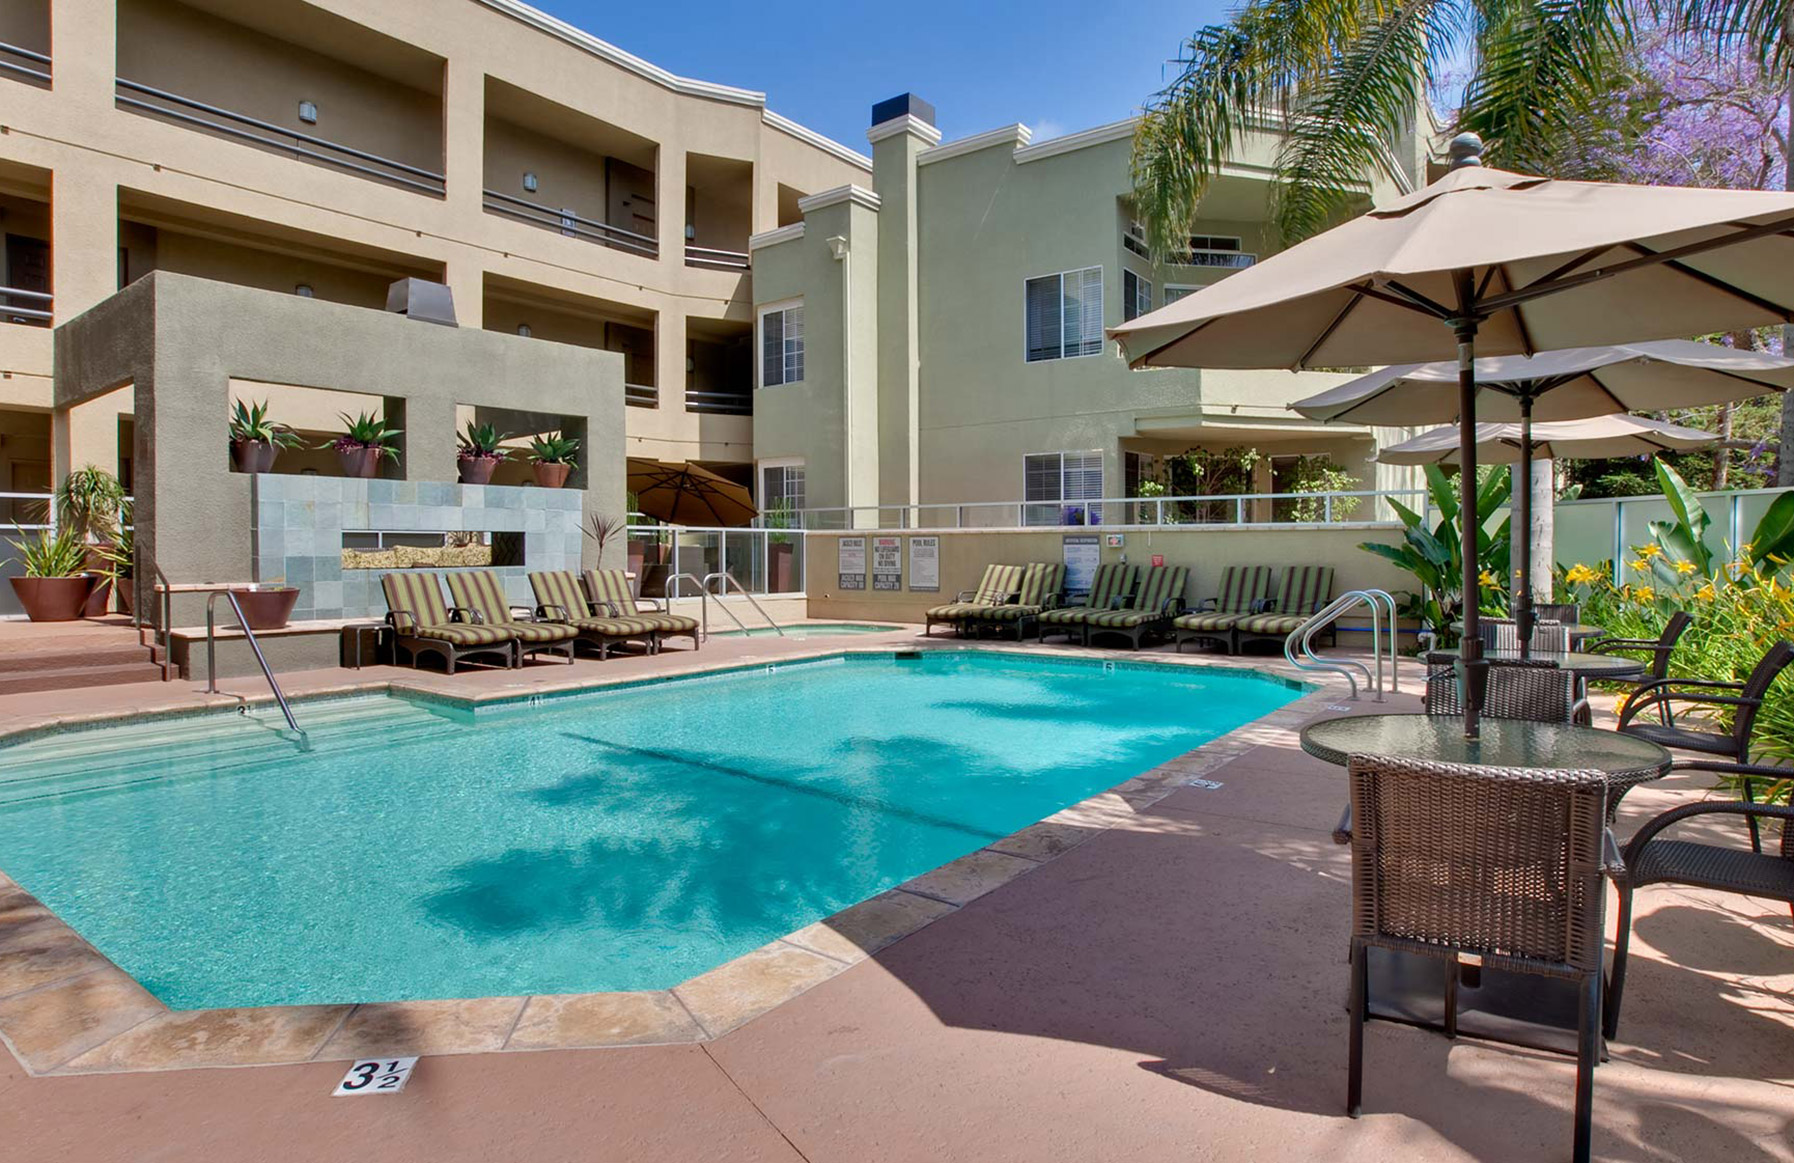 HillCreste Apartments - Los Angeles, CA - Pool Area